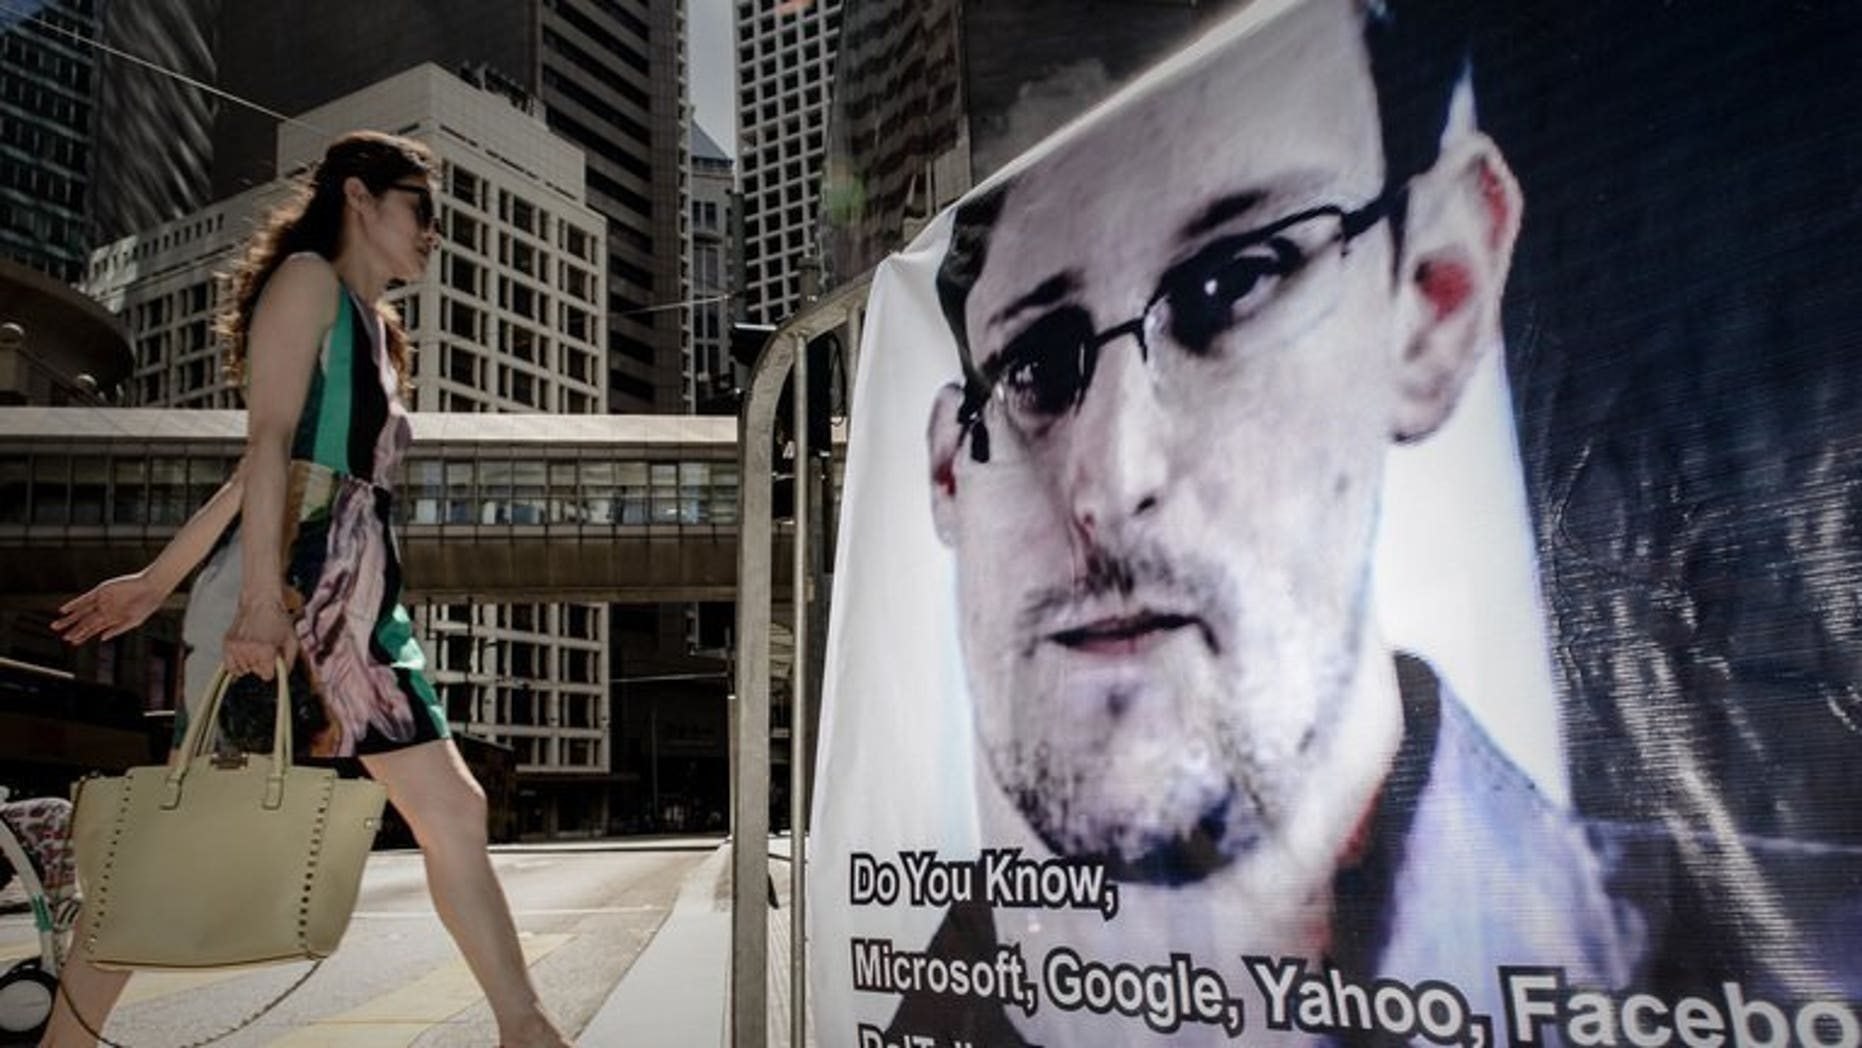 A woman walks past a banner displayed in support of former US spy Edward Snowden in Hong Kong on June 18, 2013. Snowden has requested asylum in Ecuador, the Ecuadoran foreign minister said Sunday, as he seeks to escape US justice for revealing secrets of a vast phone and Web surveillance drive.